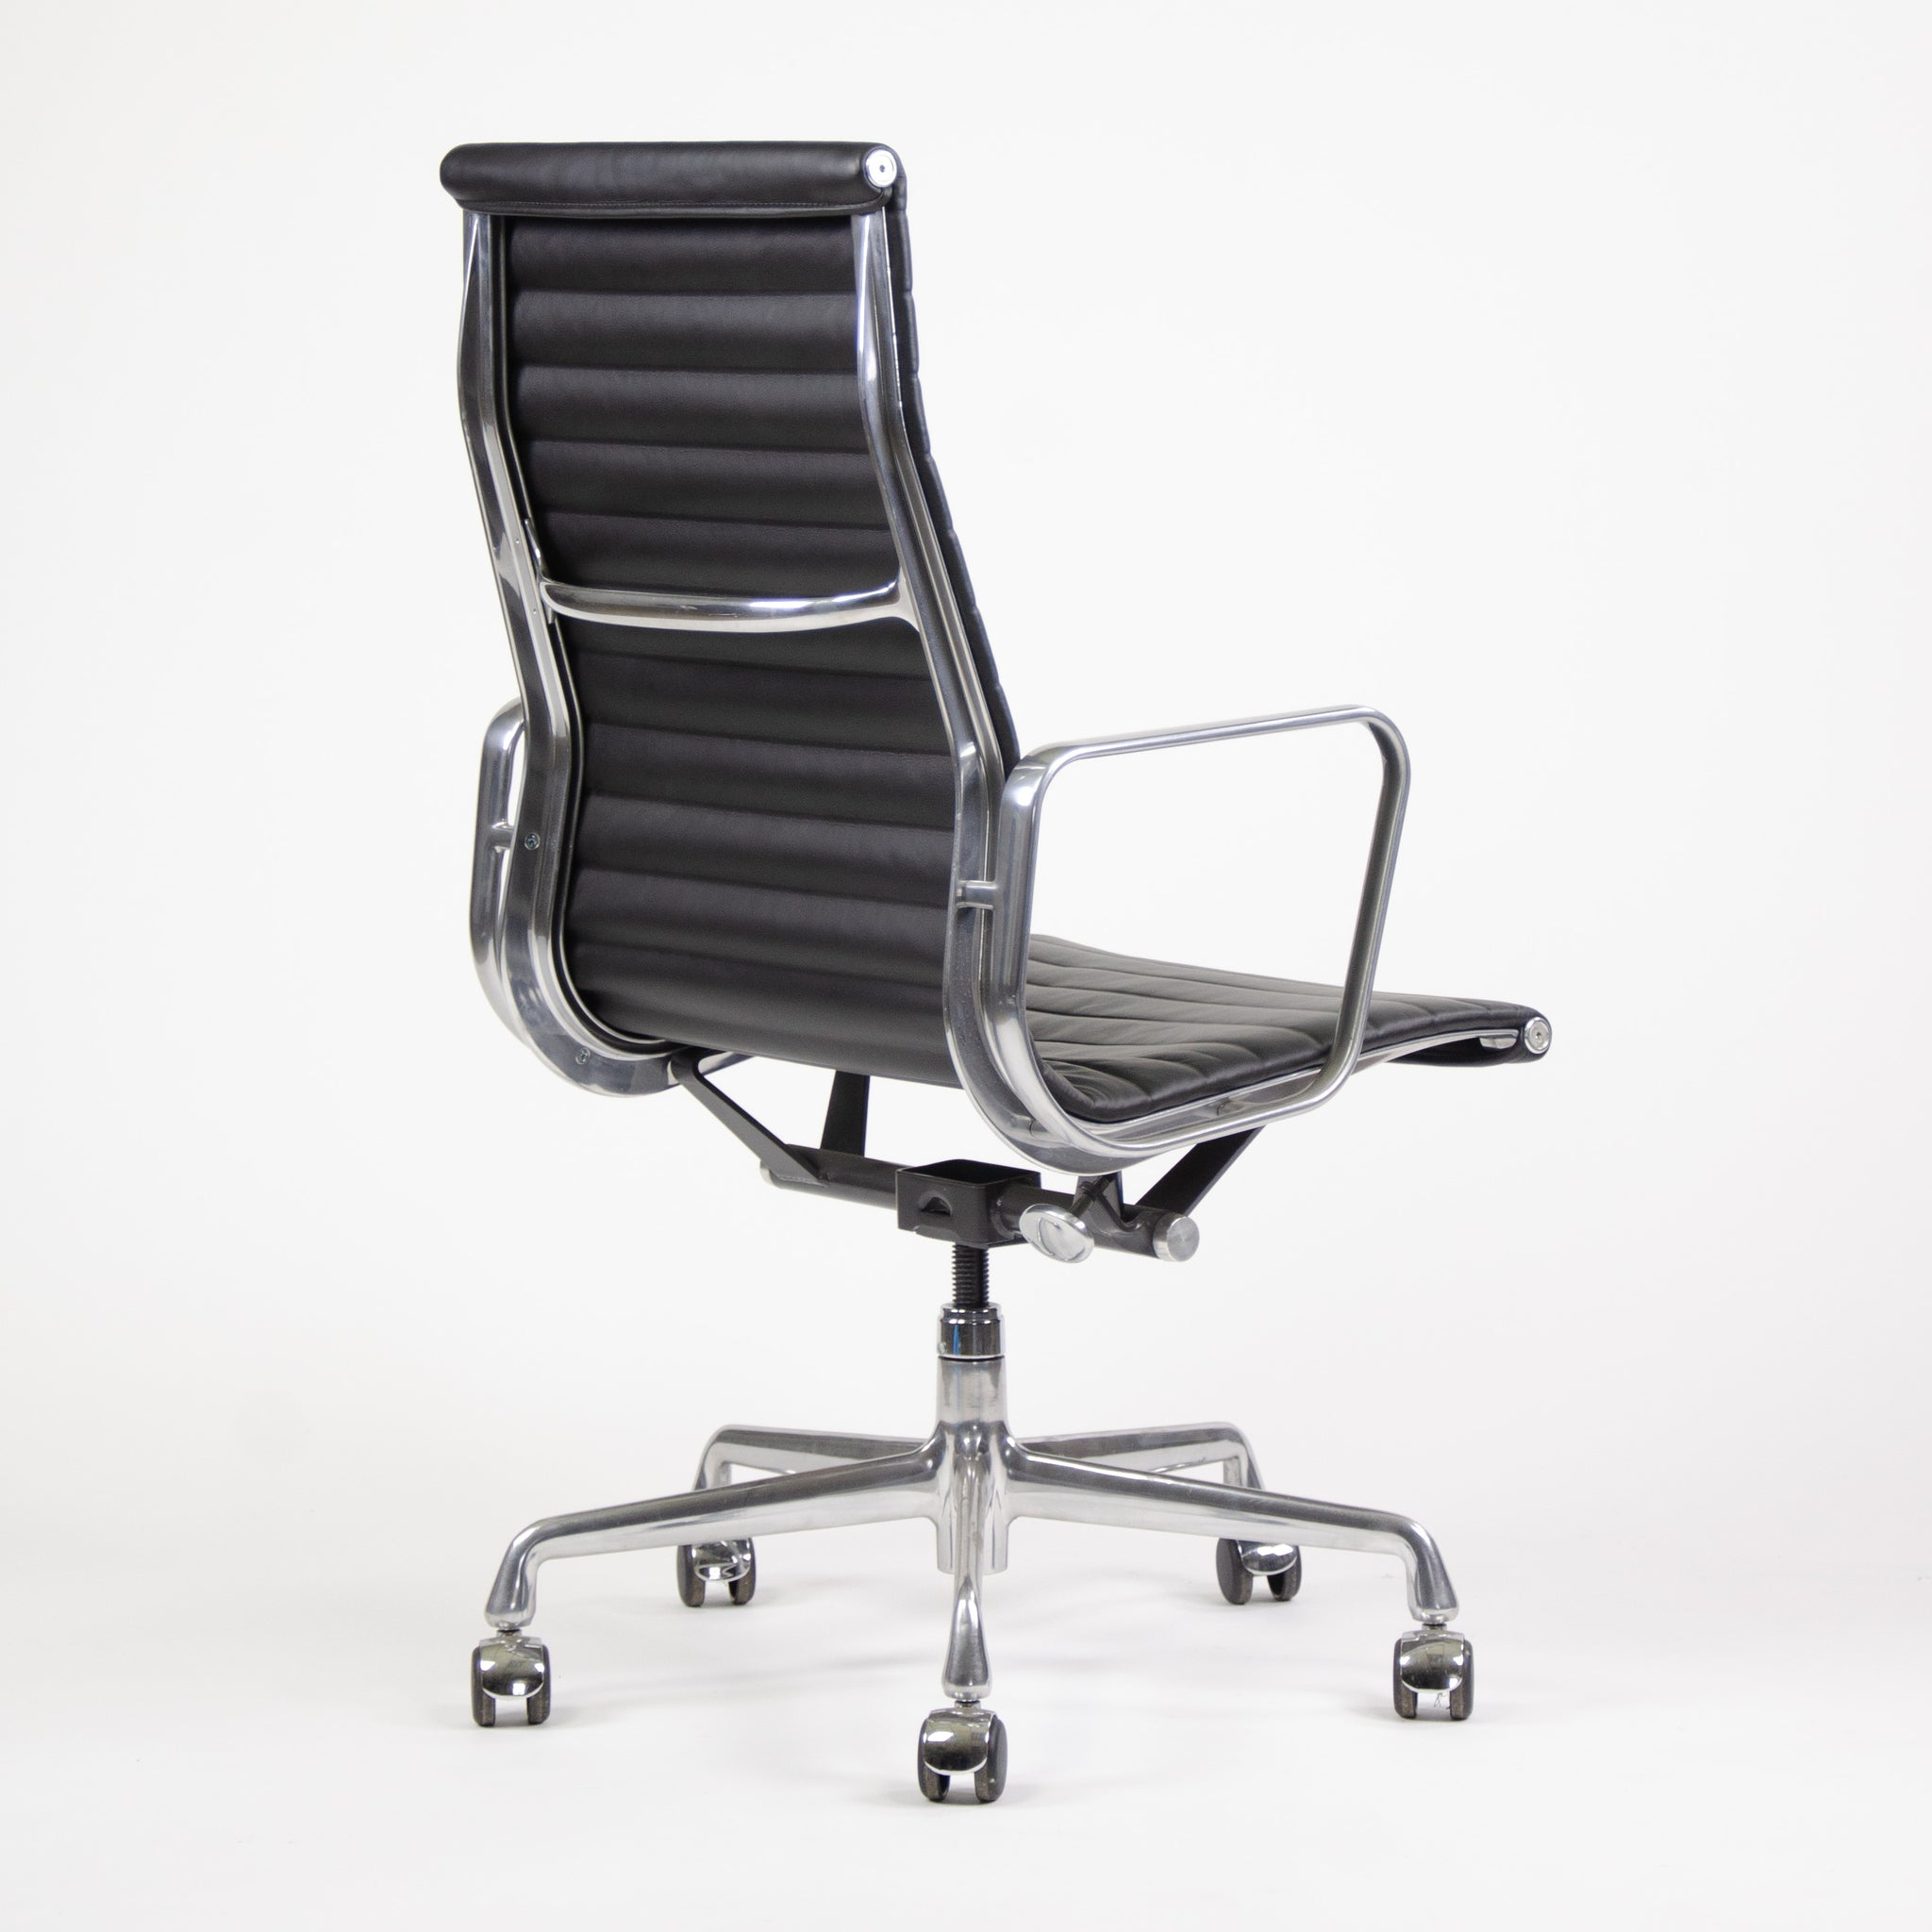 SOLD Herman Miller Eames Leather High Back Executive Aluminum Group Desk Chairs 2 Available